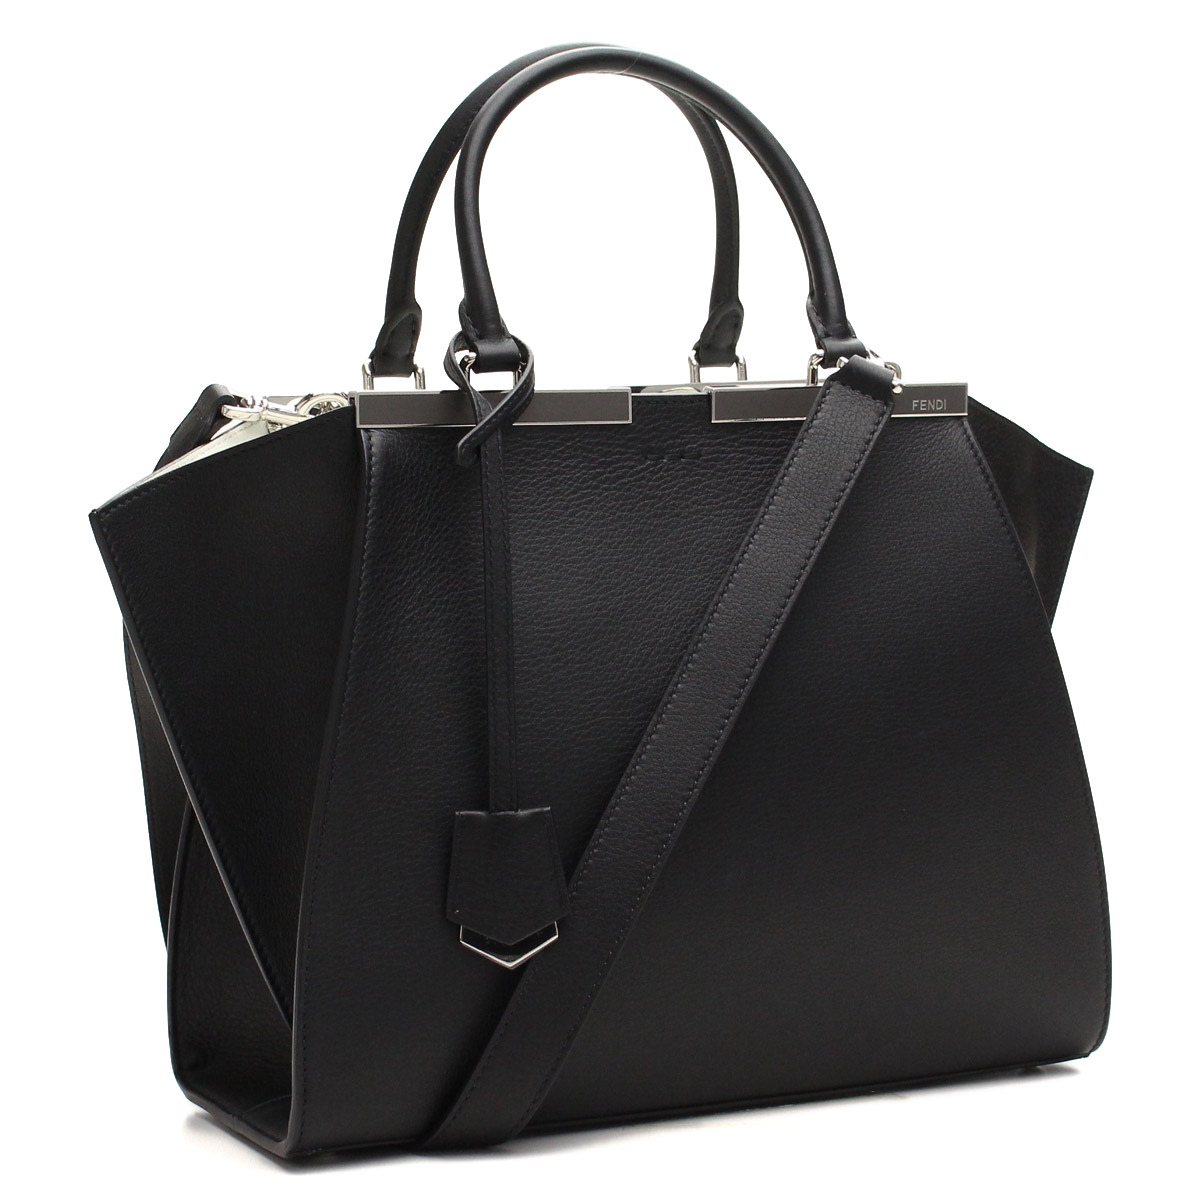 d23bd7fe72 Bighit The total brand wholesale  Fendi (FENDI) tote bag 8BH279-001A5-F0V 8  W Black( taxfree send by EMS authentic A brand new item )